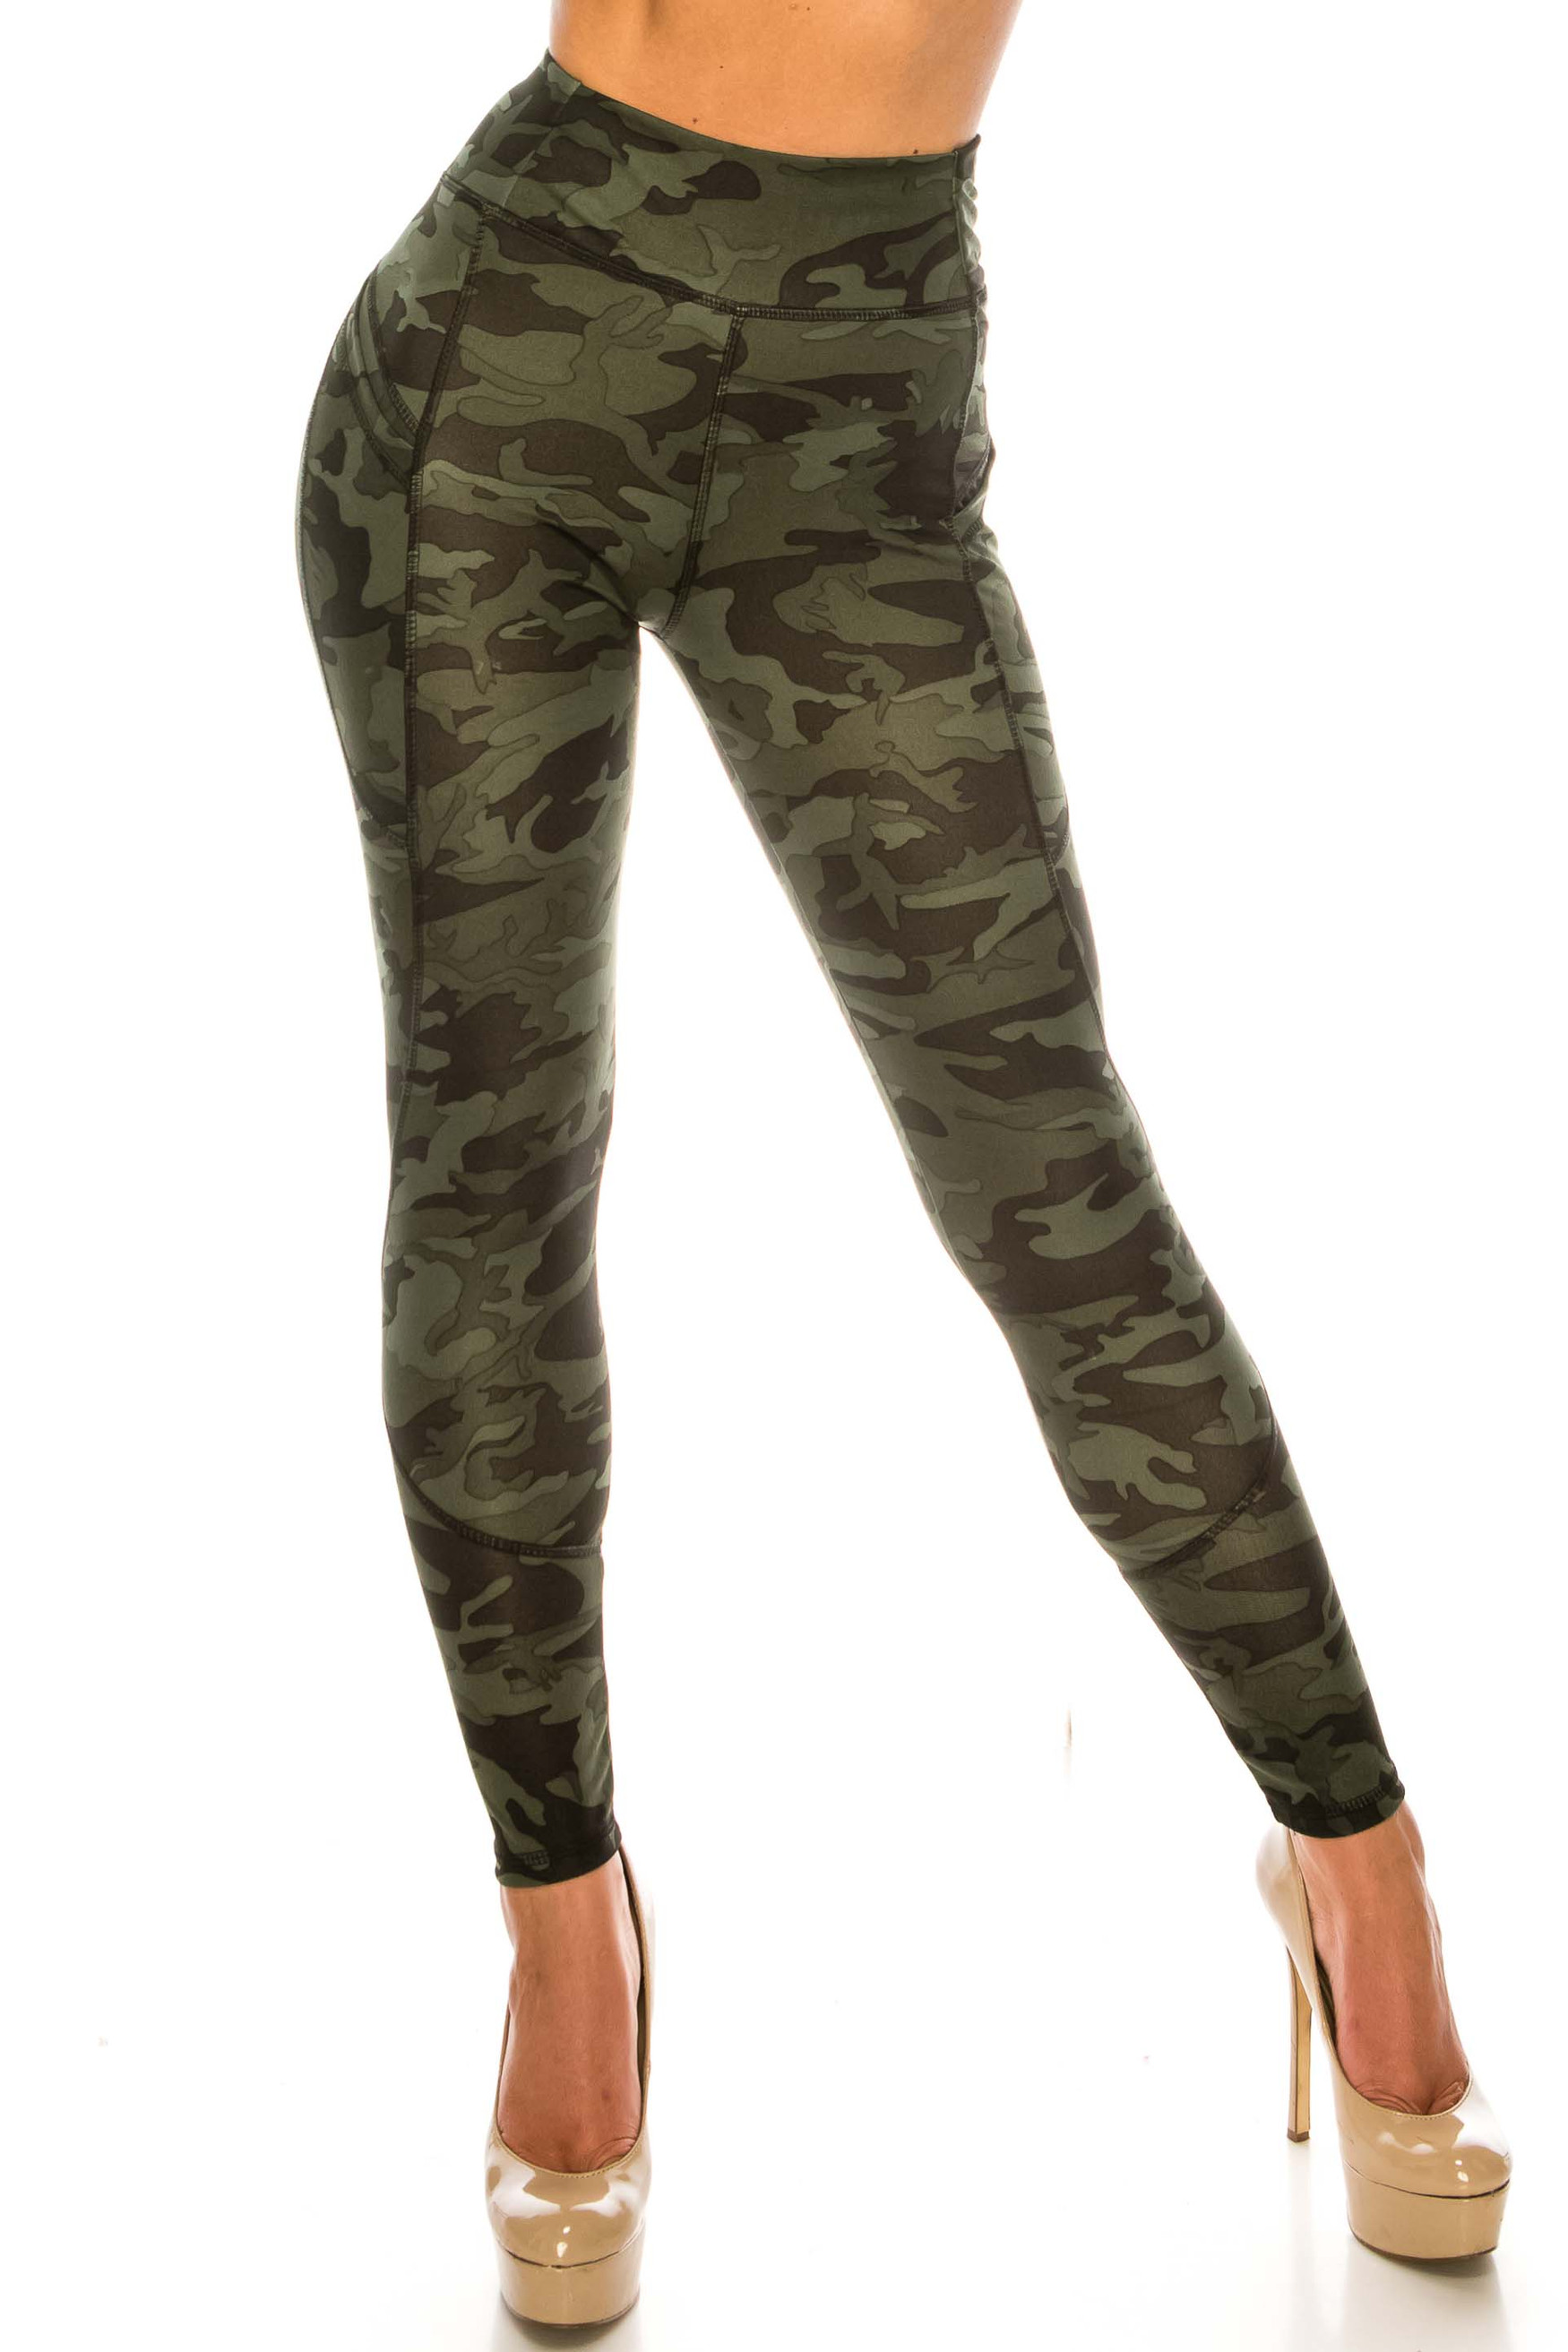 Dark Olive Camouflage Contour Seam High Waisted Sport Leggings with Pockets